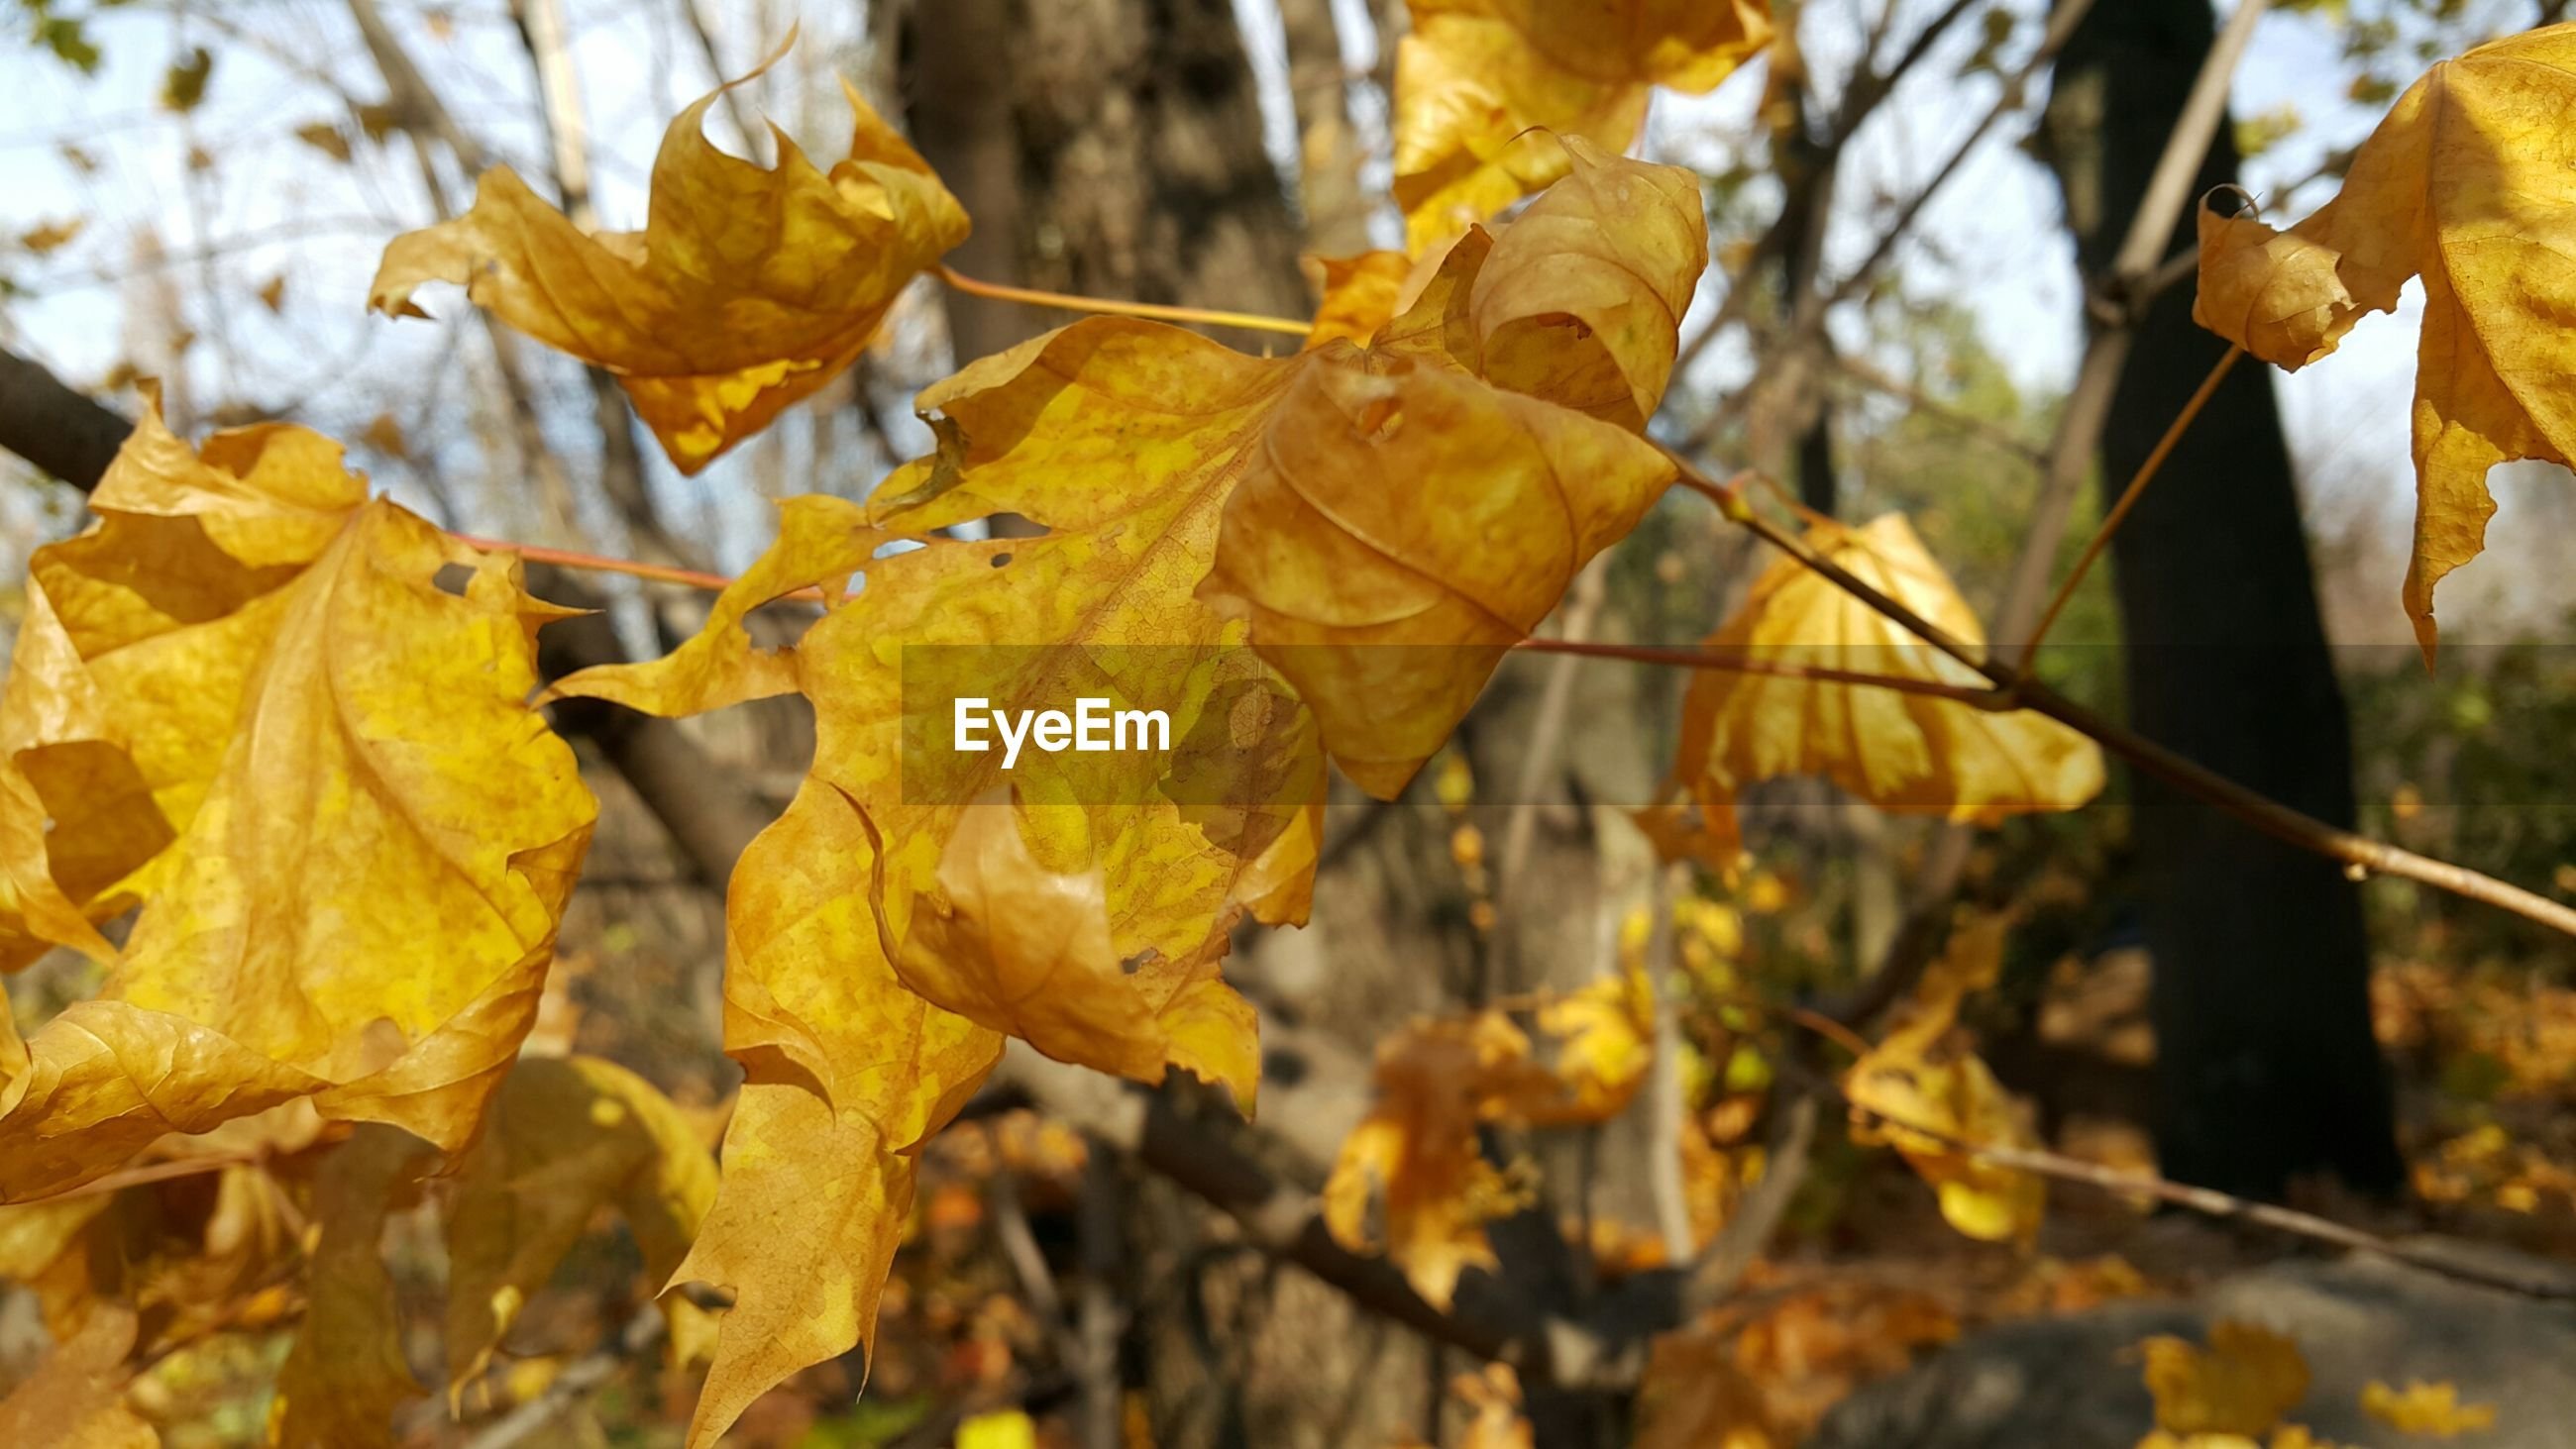 autumn, yellow, leaf, change, focus on foreground, season, close-up, leaves, tree, nature, branch, growth, dry, selective focus, beauty in nature, day, outdoors, no people, orange color, fragility